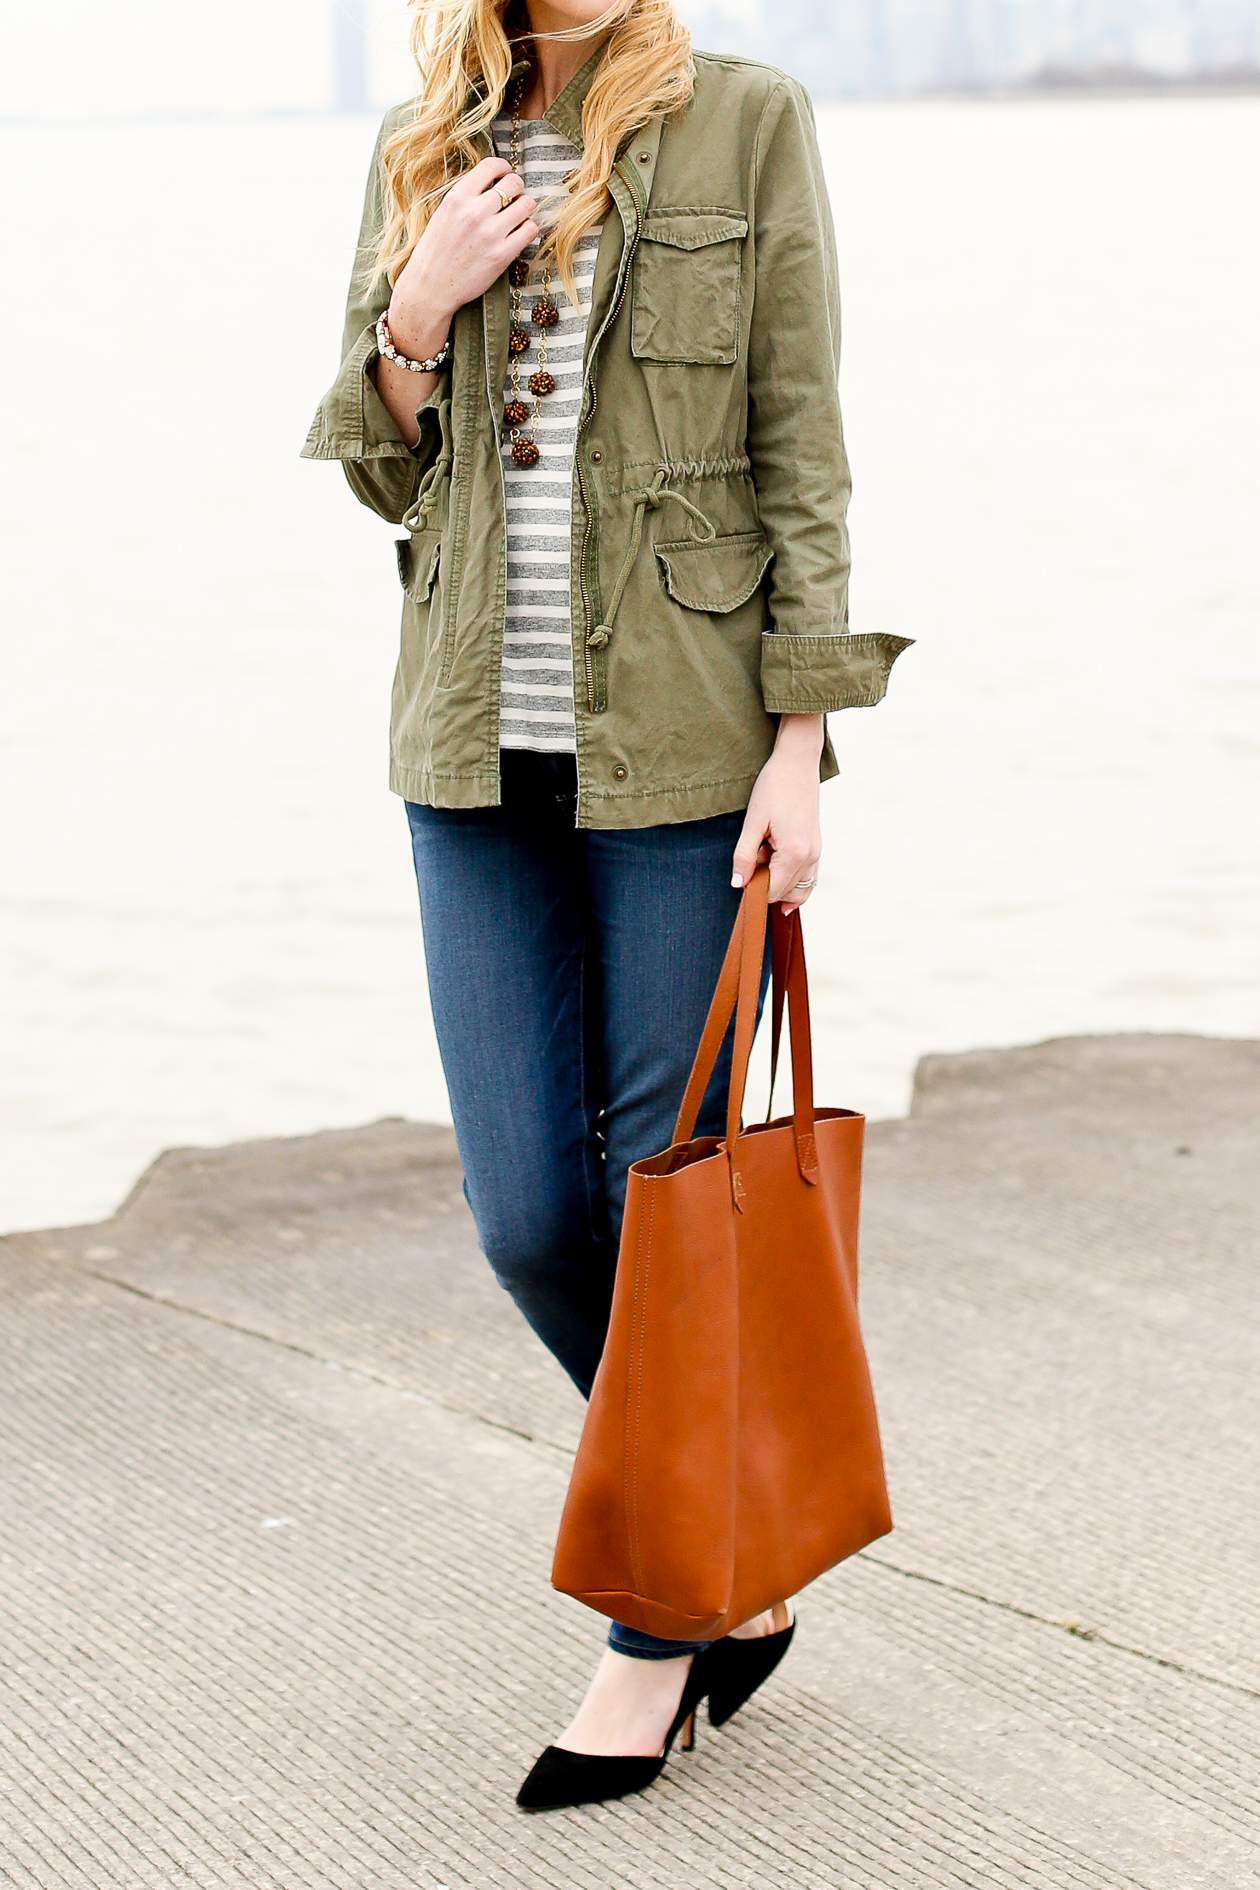 Madewell Transport Tote-2